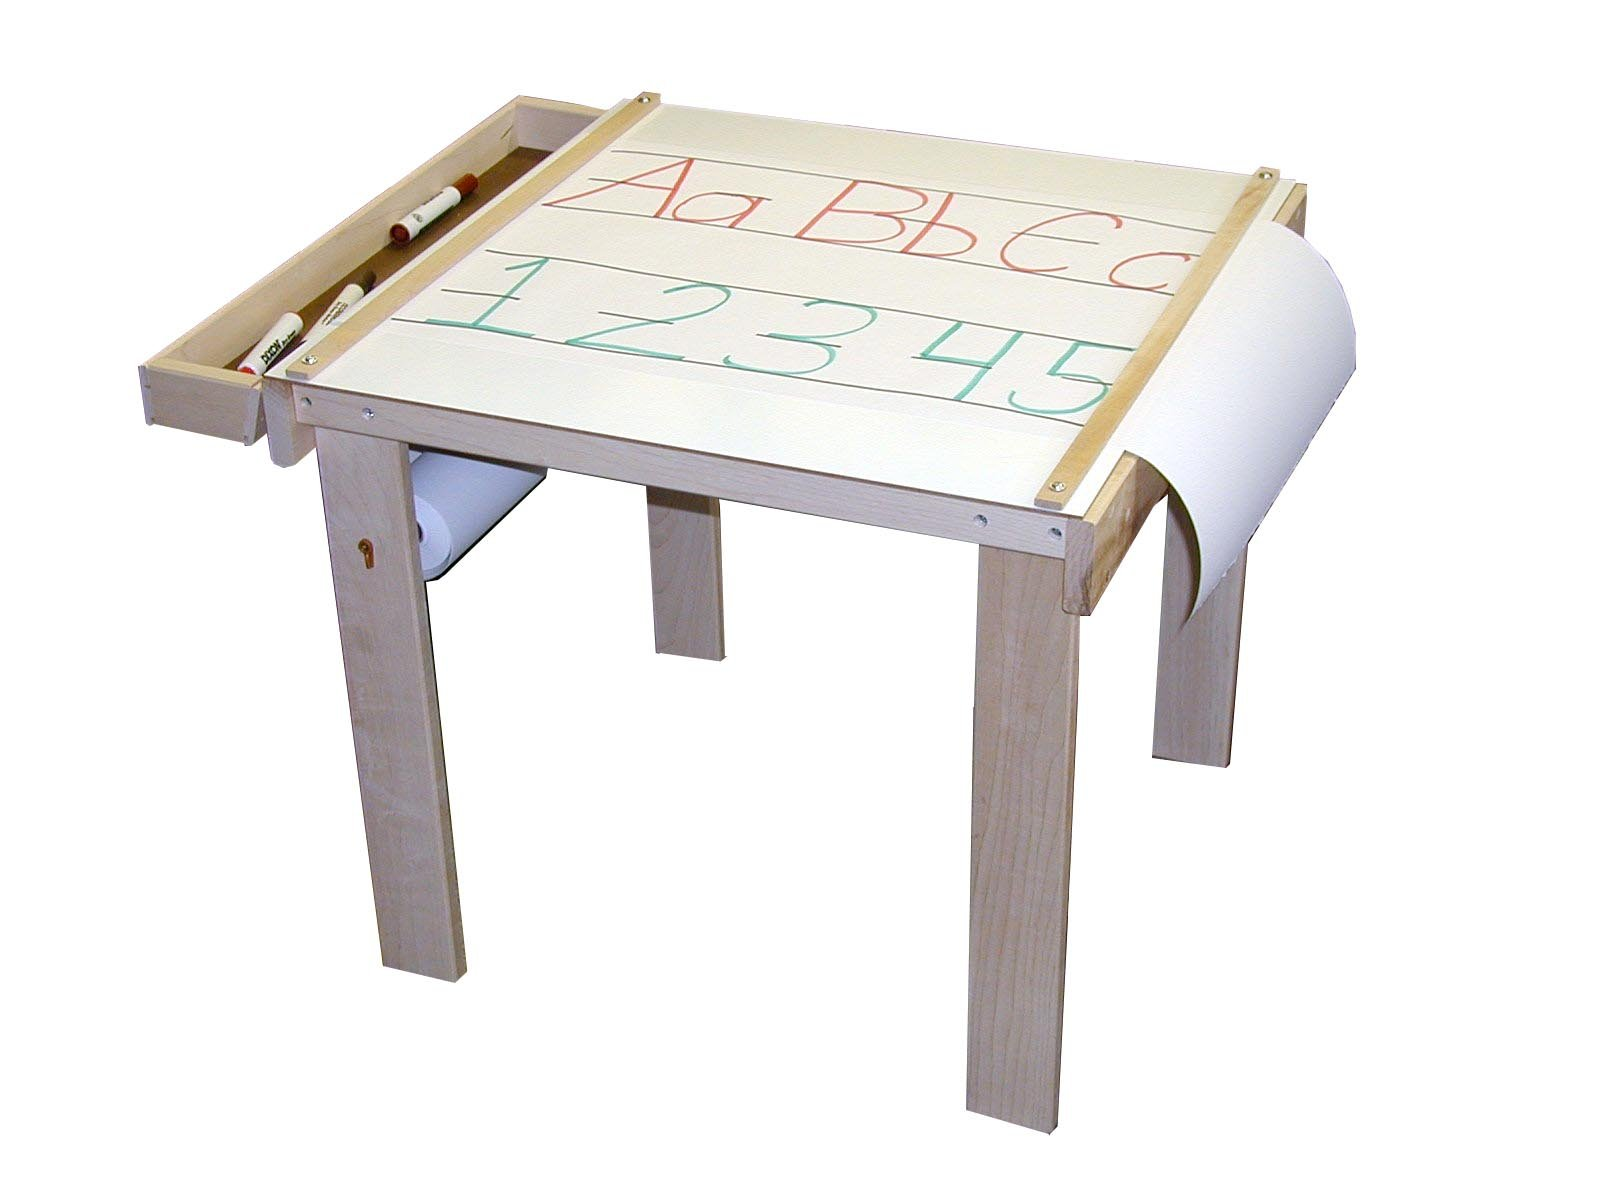 Beka 08402 Art Table one wood tray paper holder under table (paper sold separately)